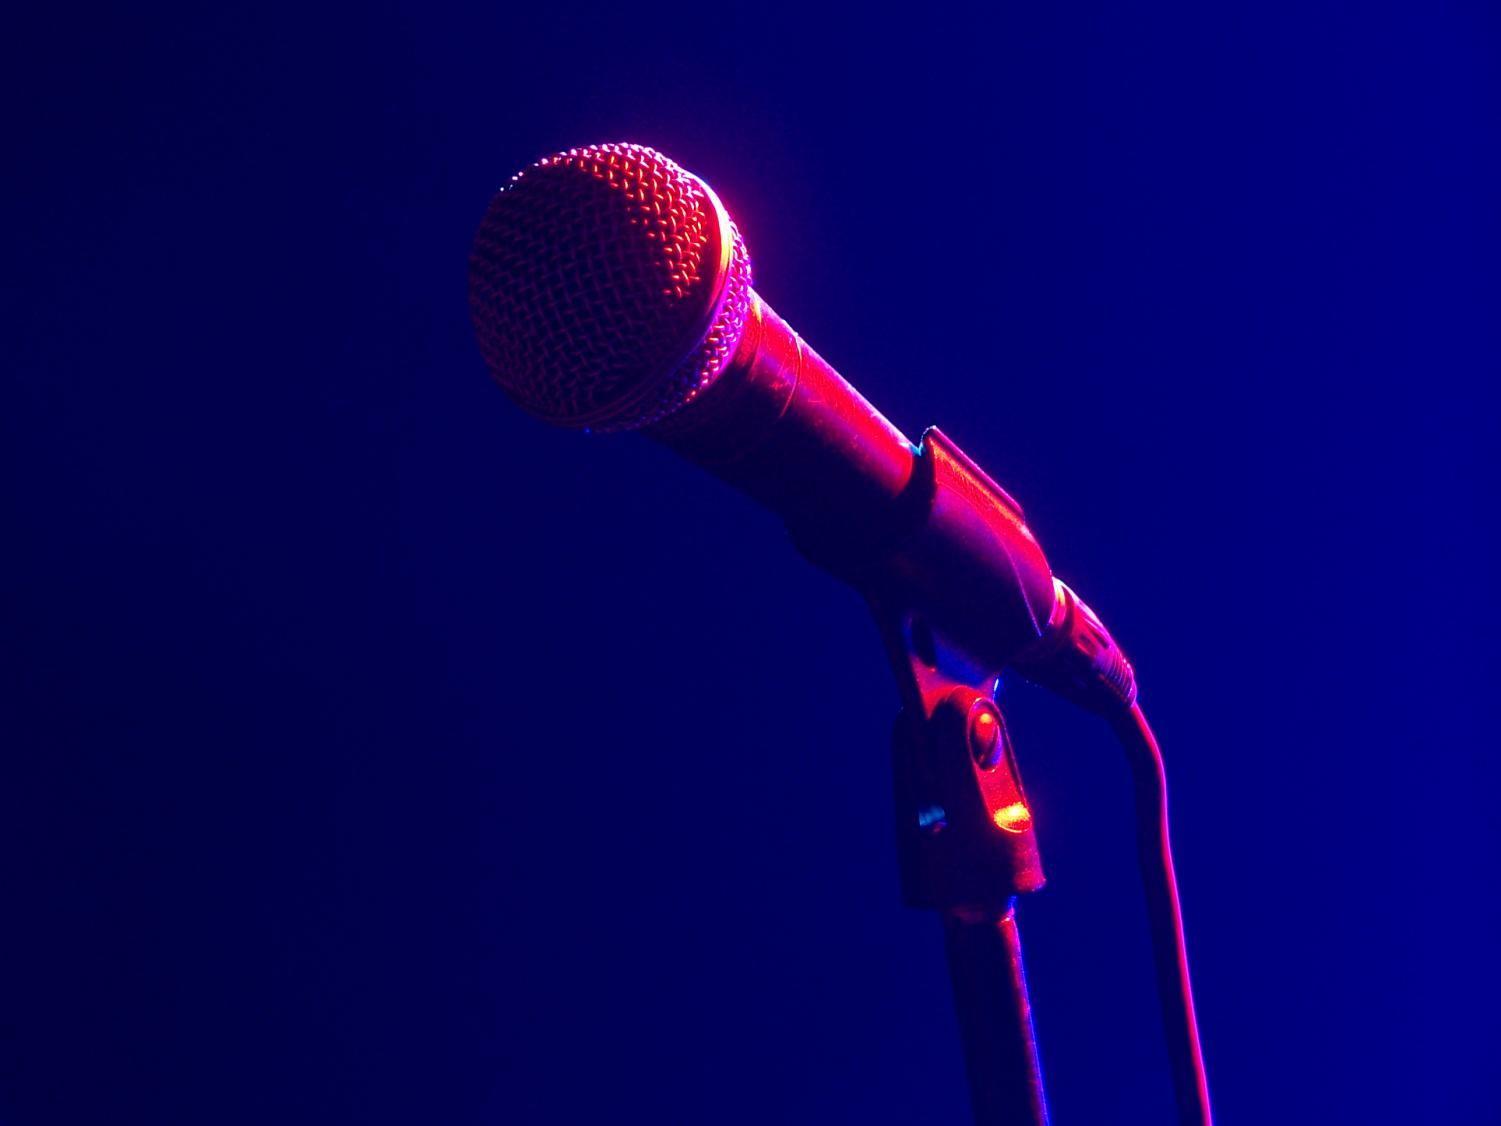 Open mic nights give people the chance to express themselves in a variety of different ways.